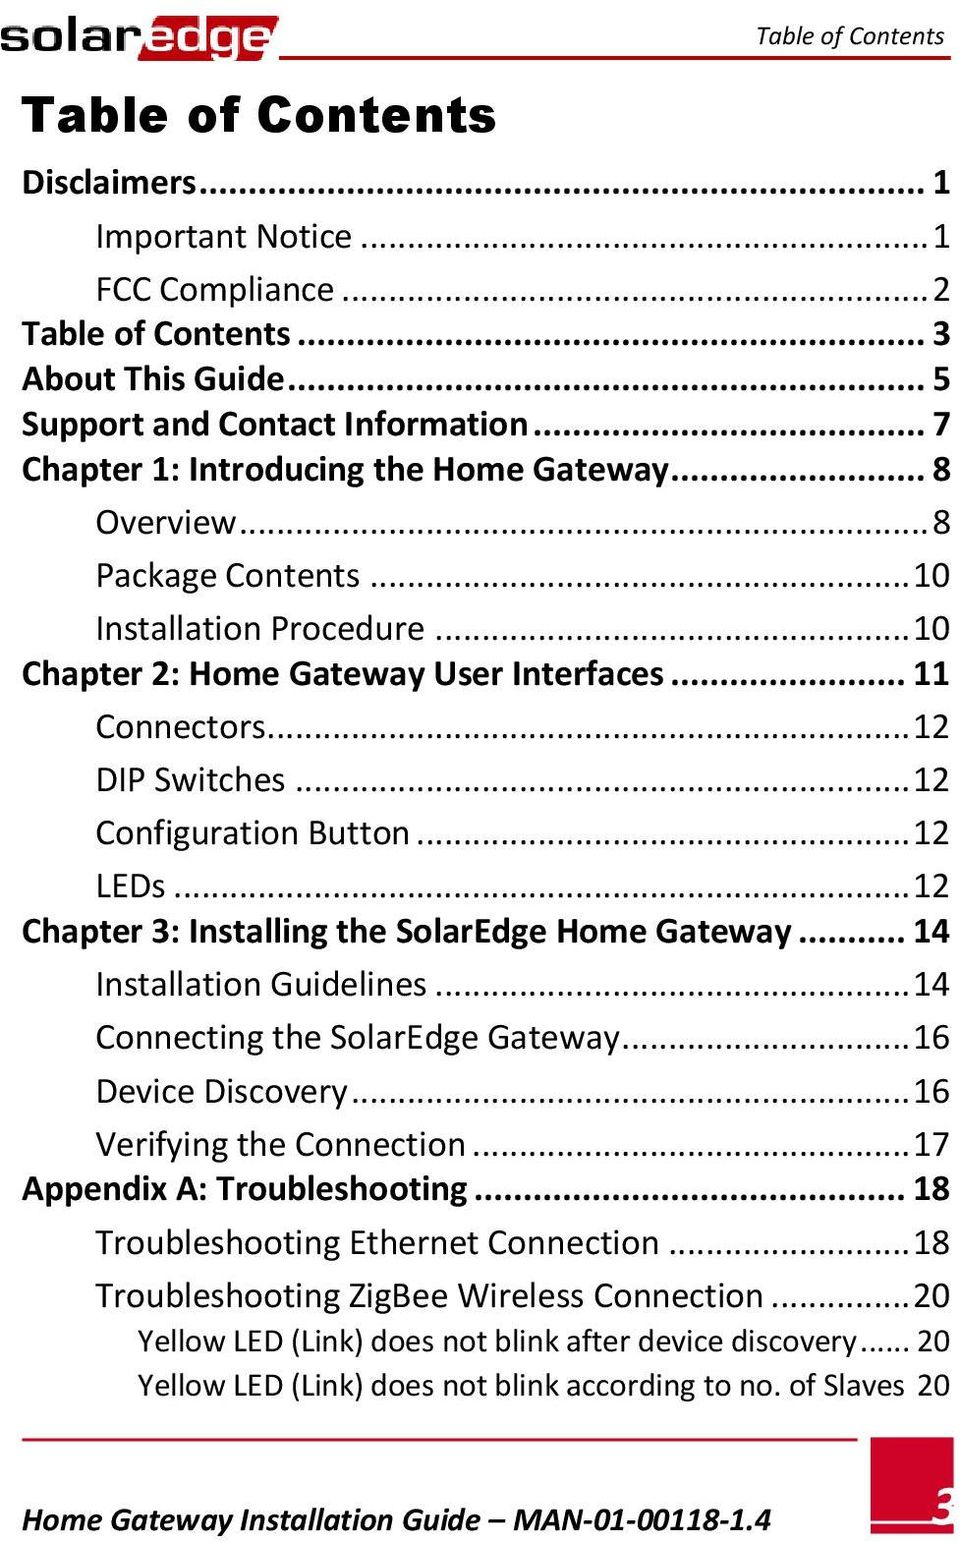 .. 12 Configuration Button... 12 LEDs... 12 Chapter 3: Installing the SolarEdge Home Gateway... 14 Installation Guidelines... 14 Connecting the SolarEdge Gateway... 16 Device Discovery.